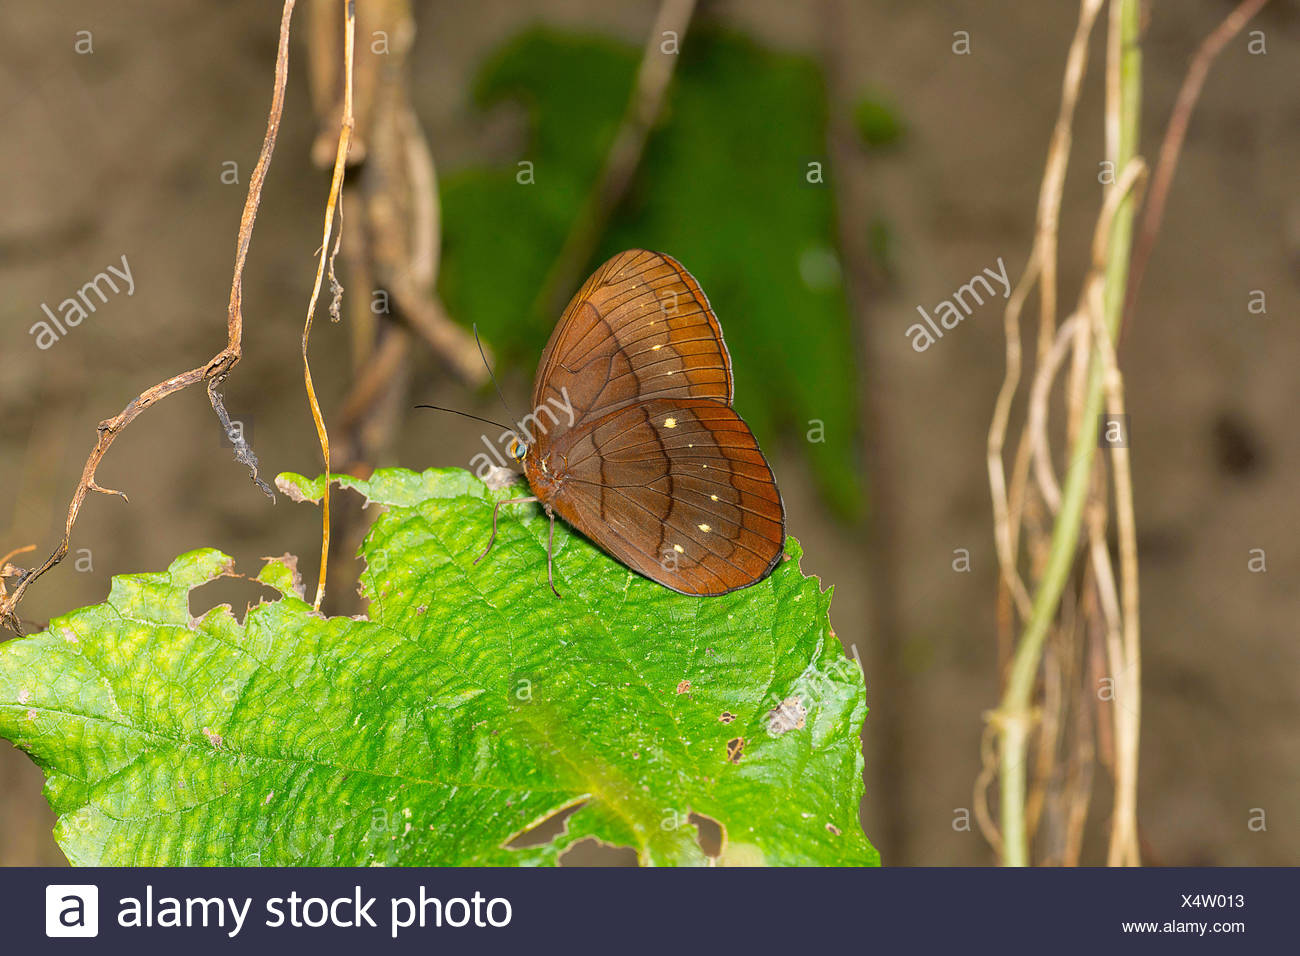 Assam Large Faun, Faunis eumeus assama, Brush-footed butterfly family, Satakha, Nagaland, India - Stock Image